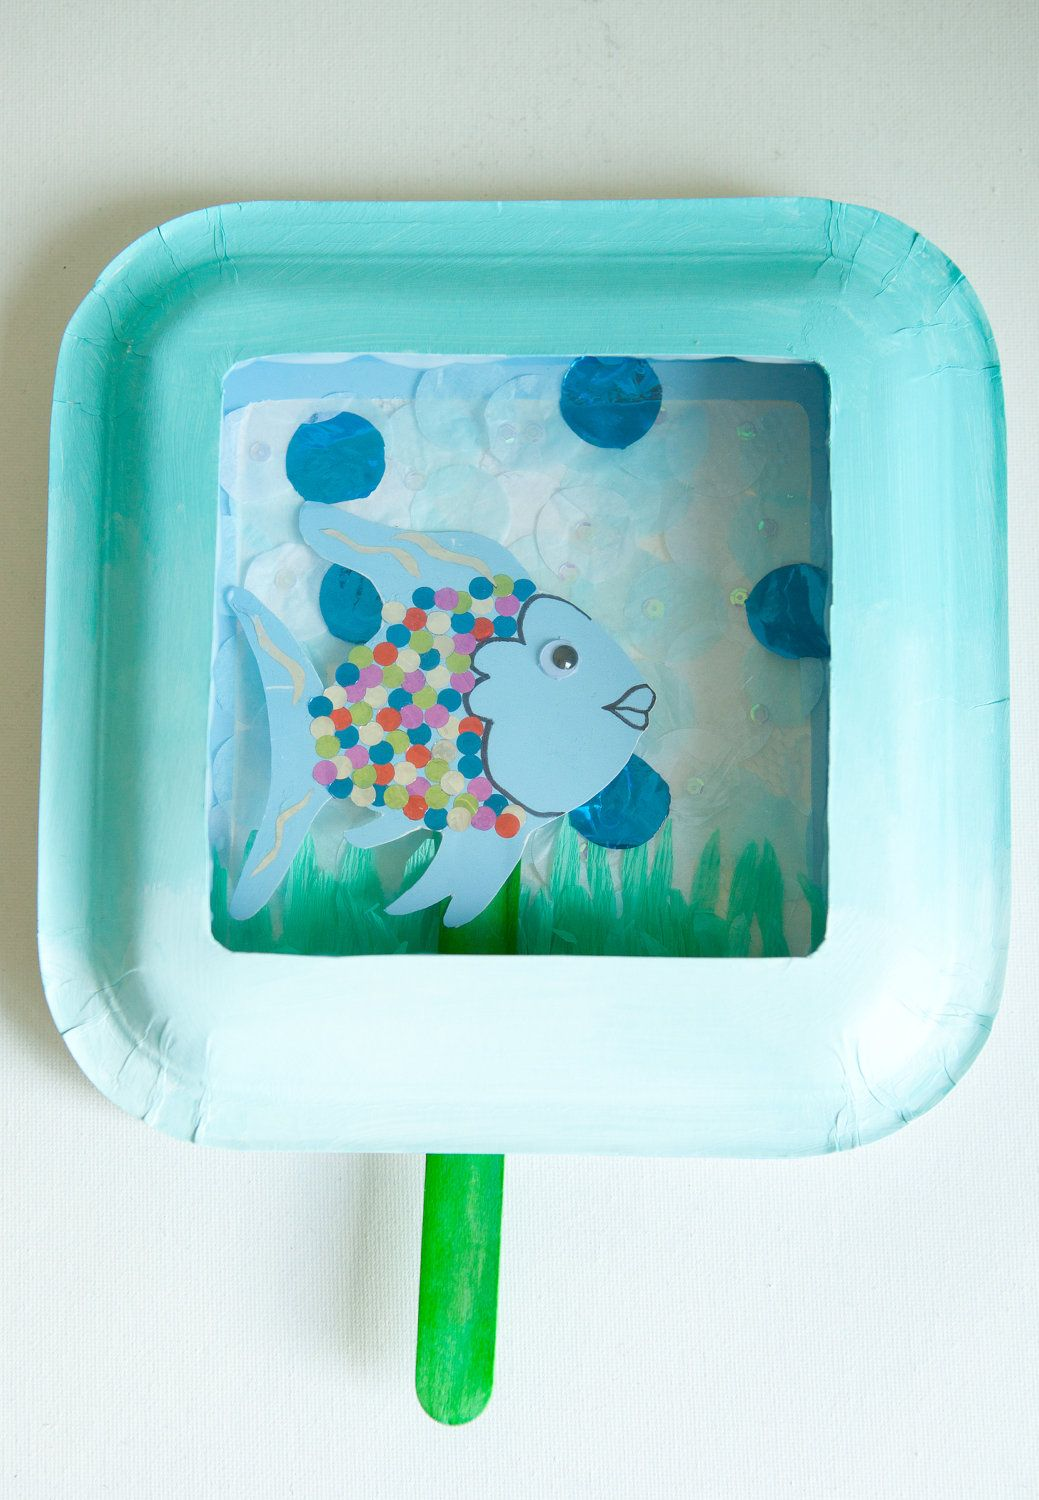 Rainbow Fish Diorama Kids Craft Kit Puppet Create Along While You Read For Toddlers Birthday